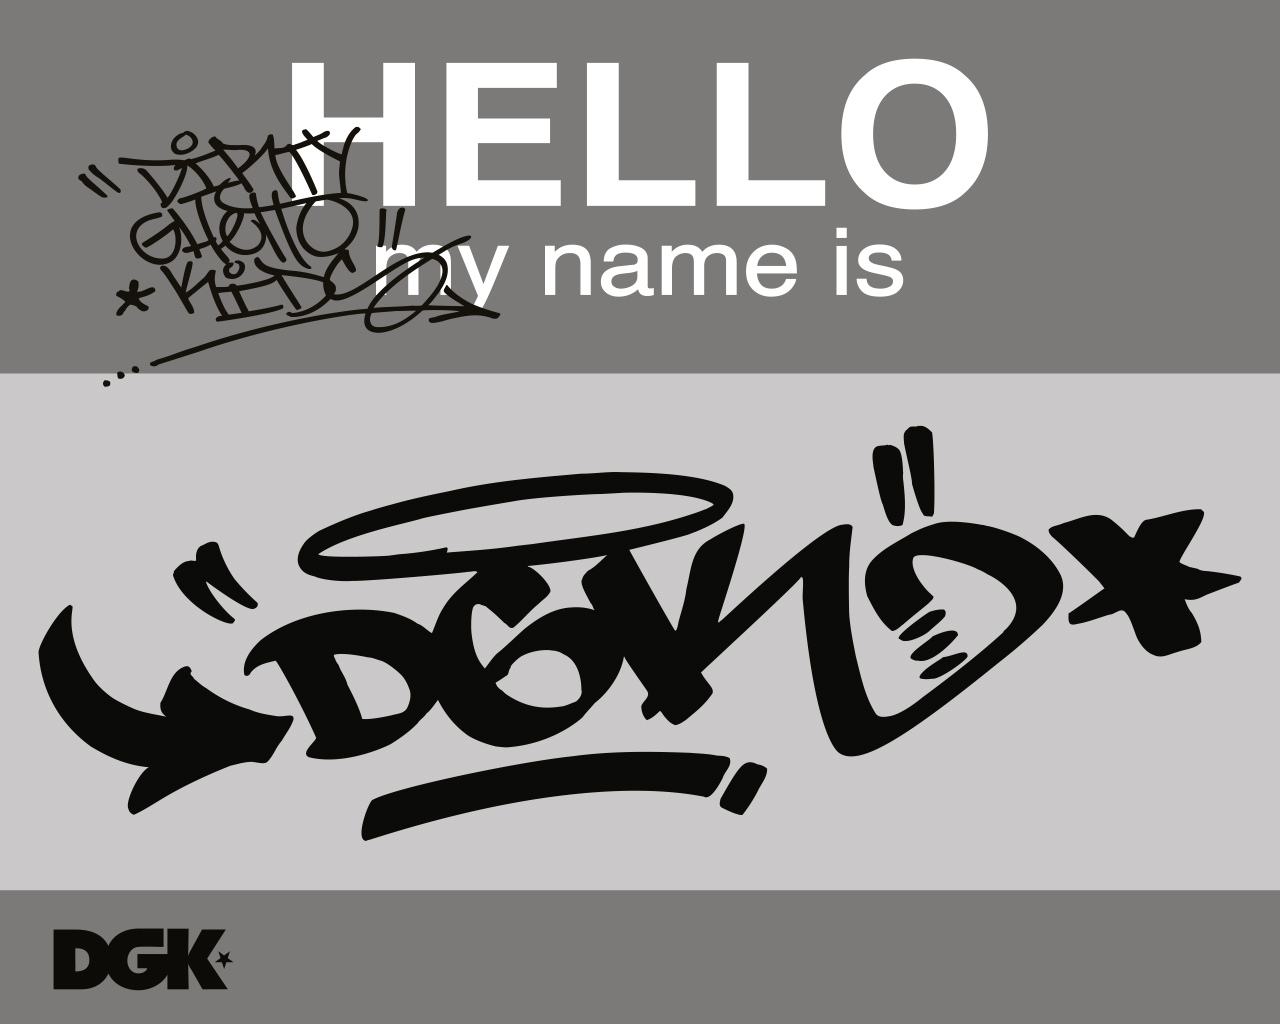 DGK graphics and comments 1280x1024